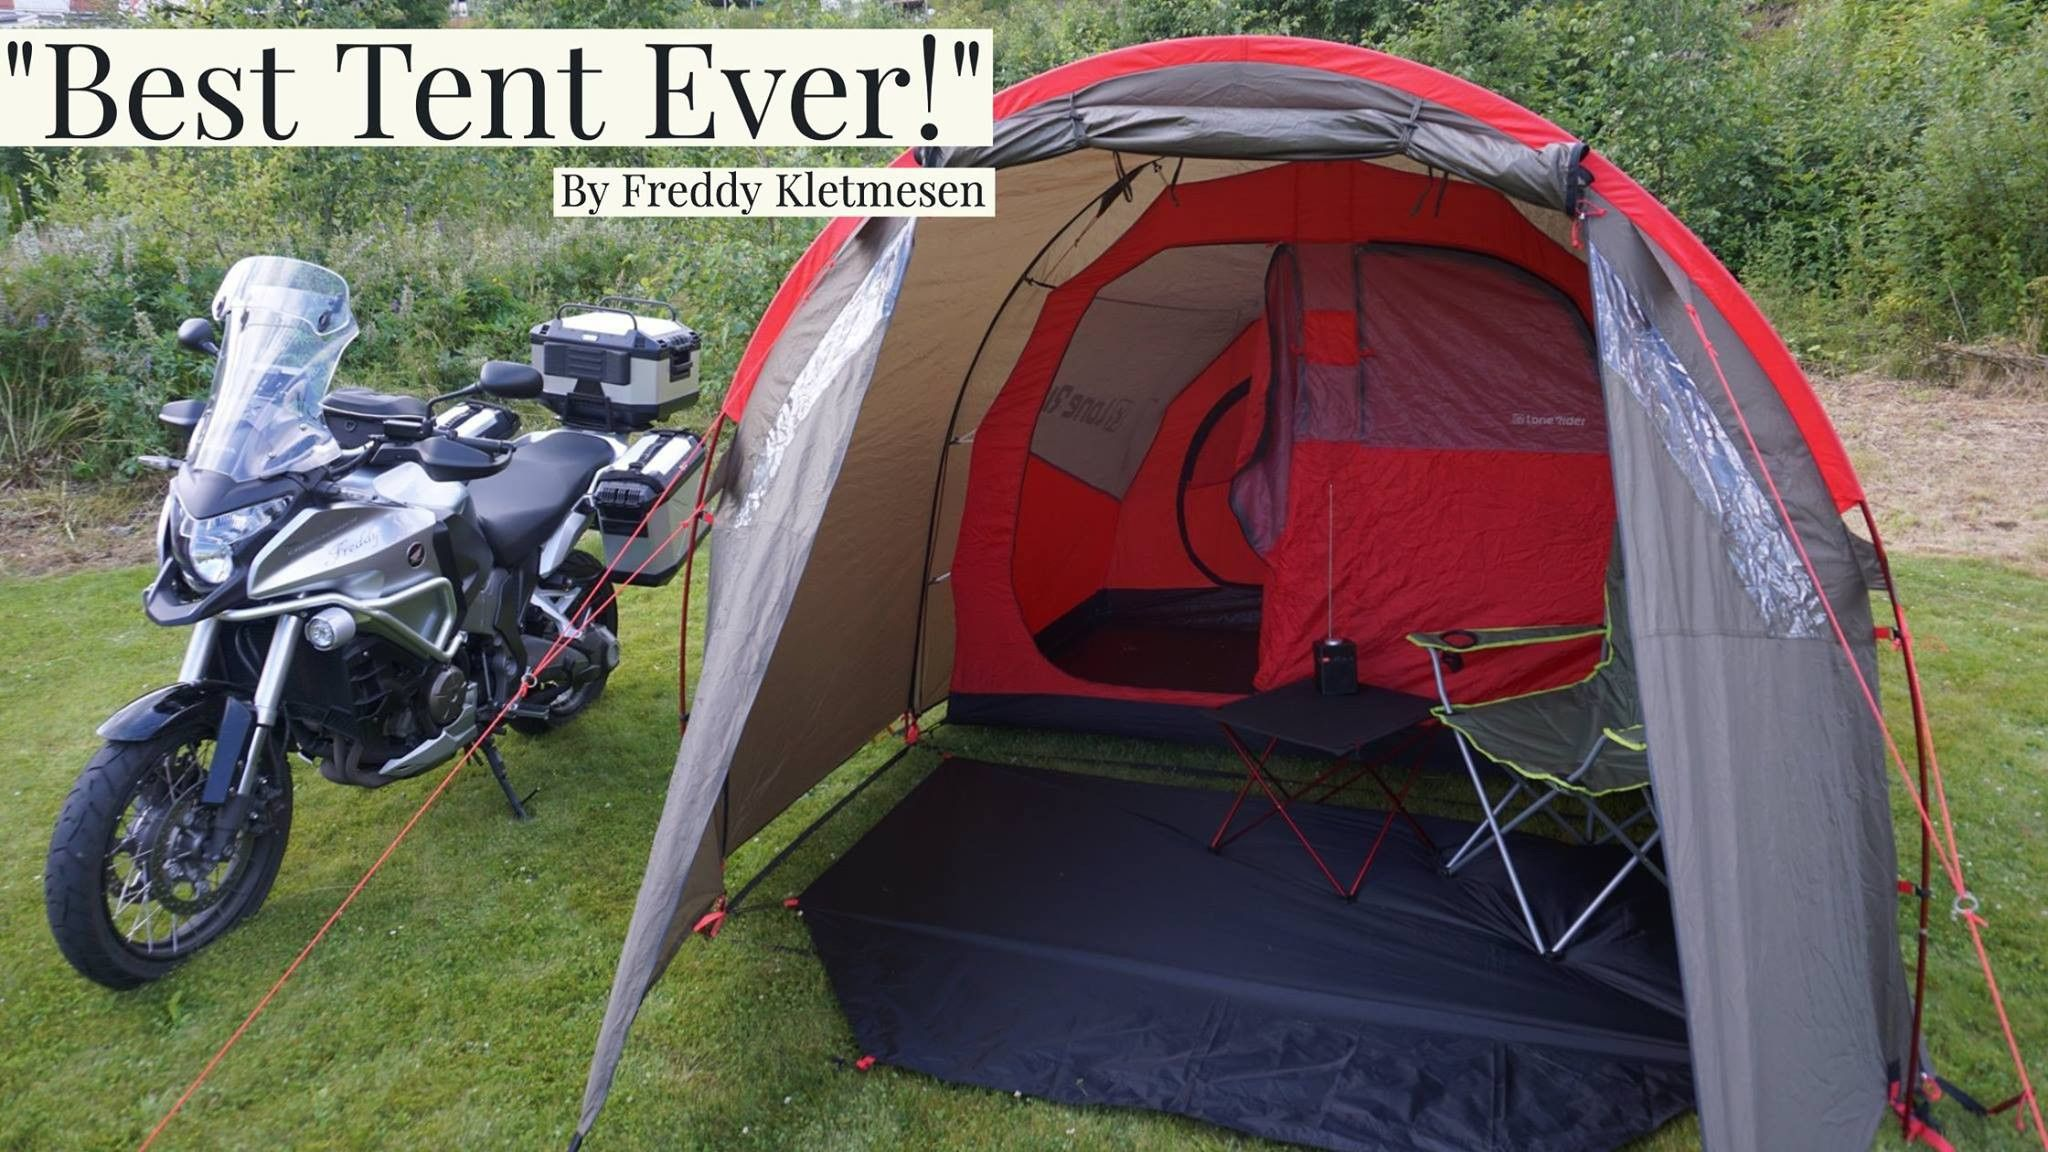 The MOTOTENT is a top of the line motorcycle tent built by riders for riders. It has the strength and durability to handle the roughest environments. & LONE RIDER: The Motorcycle Tent MotoTent | Motocicleta | Pinterest ...